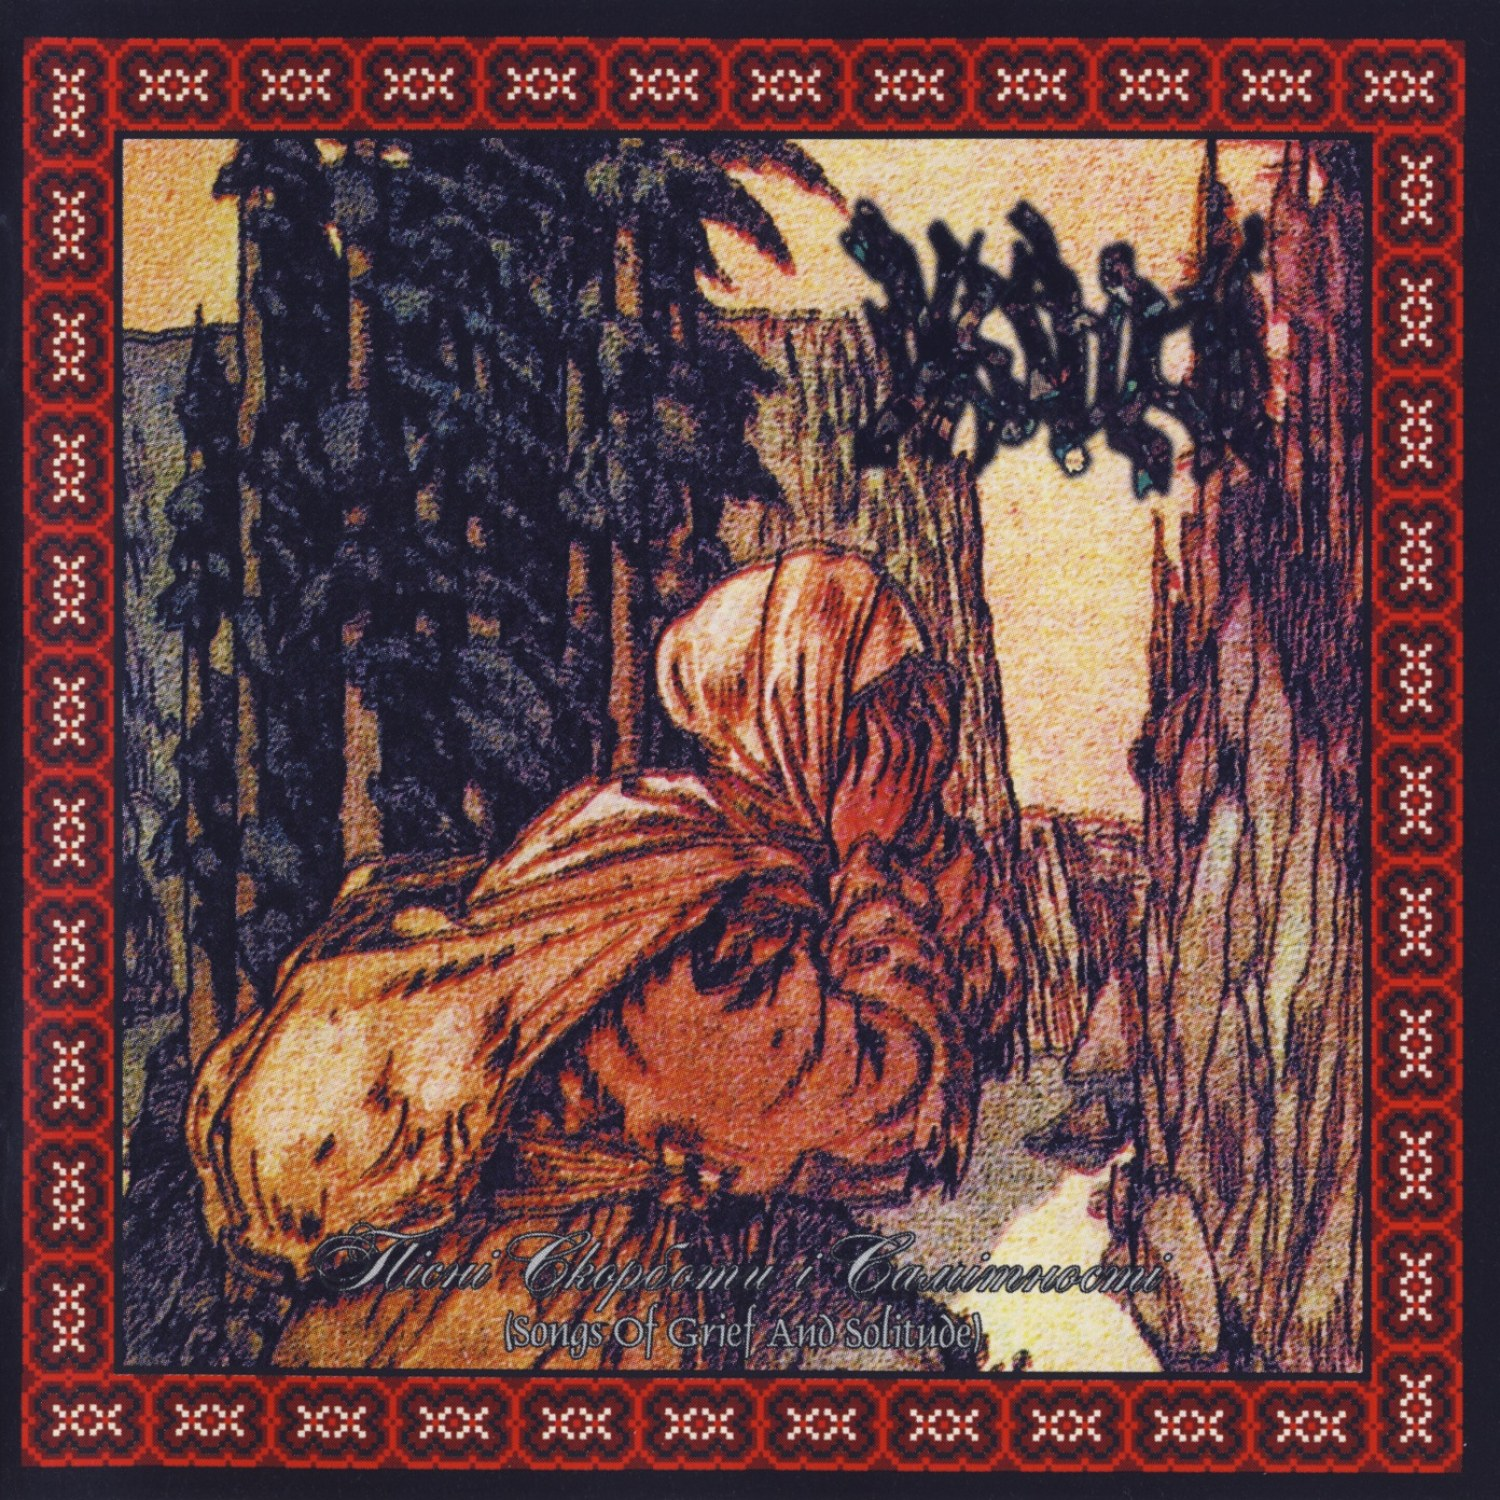 Review for Drudkh - Songs of Grief and Solitude